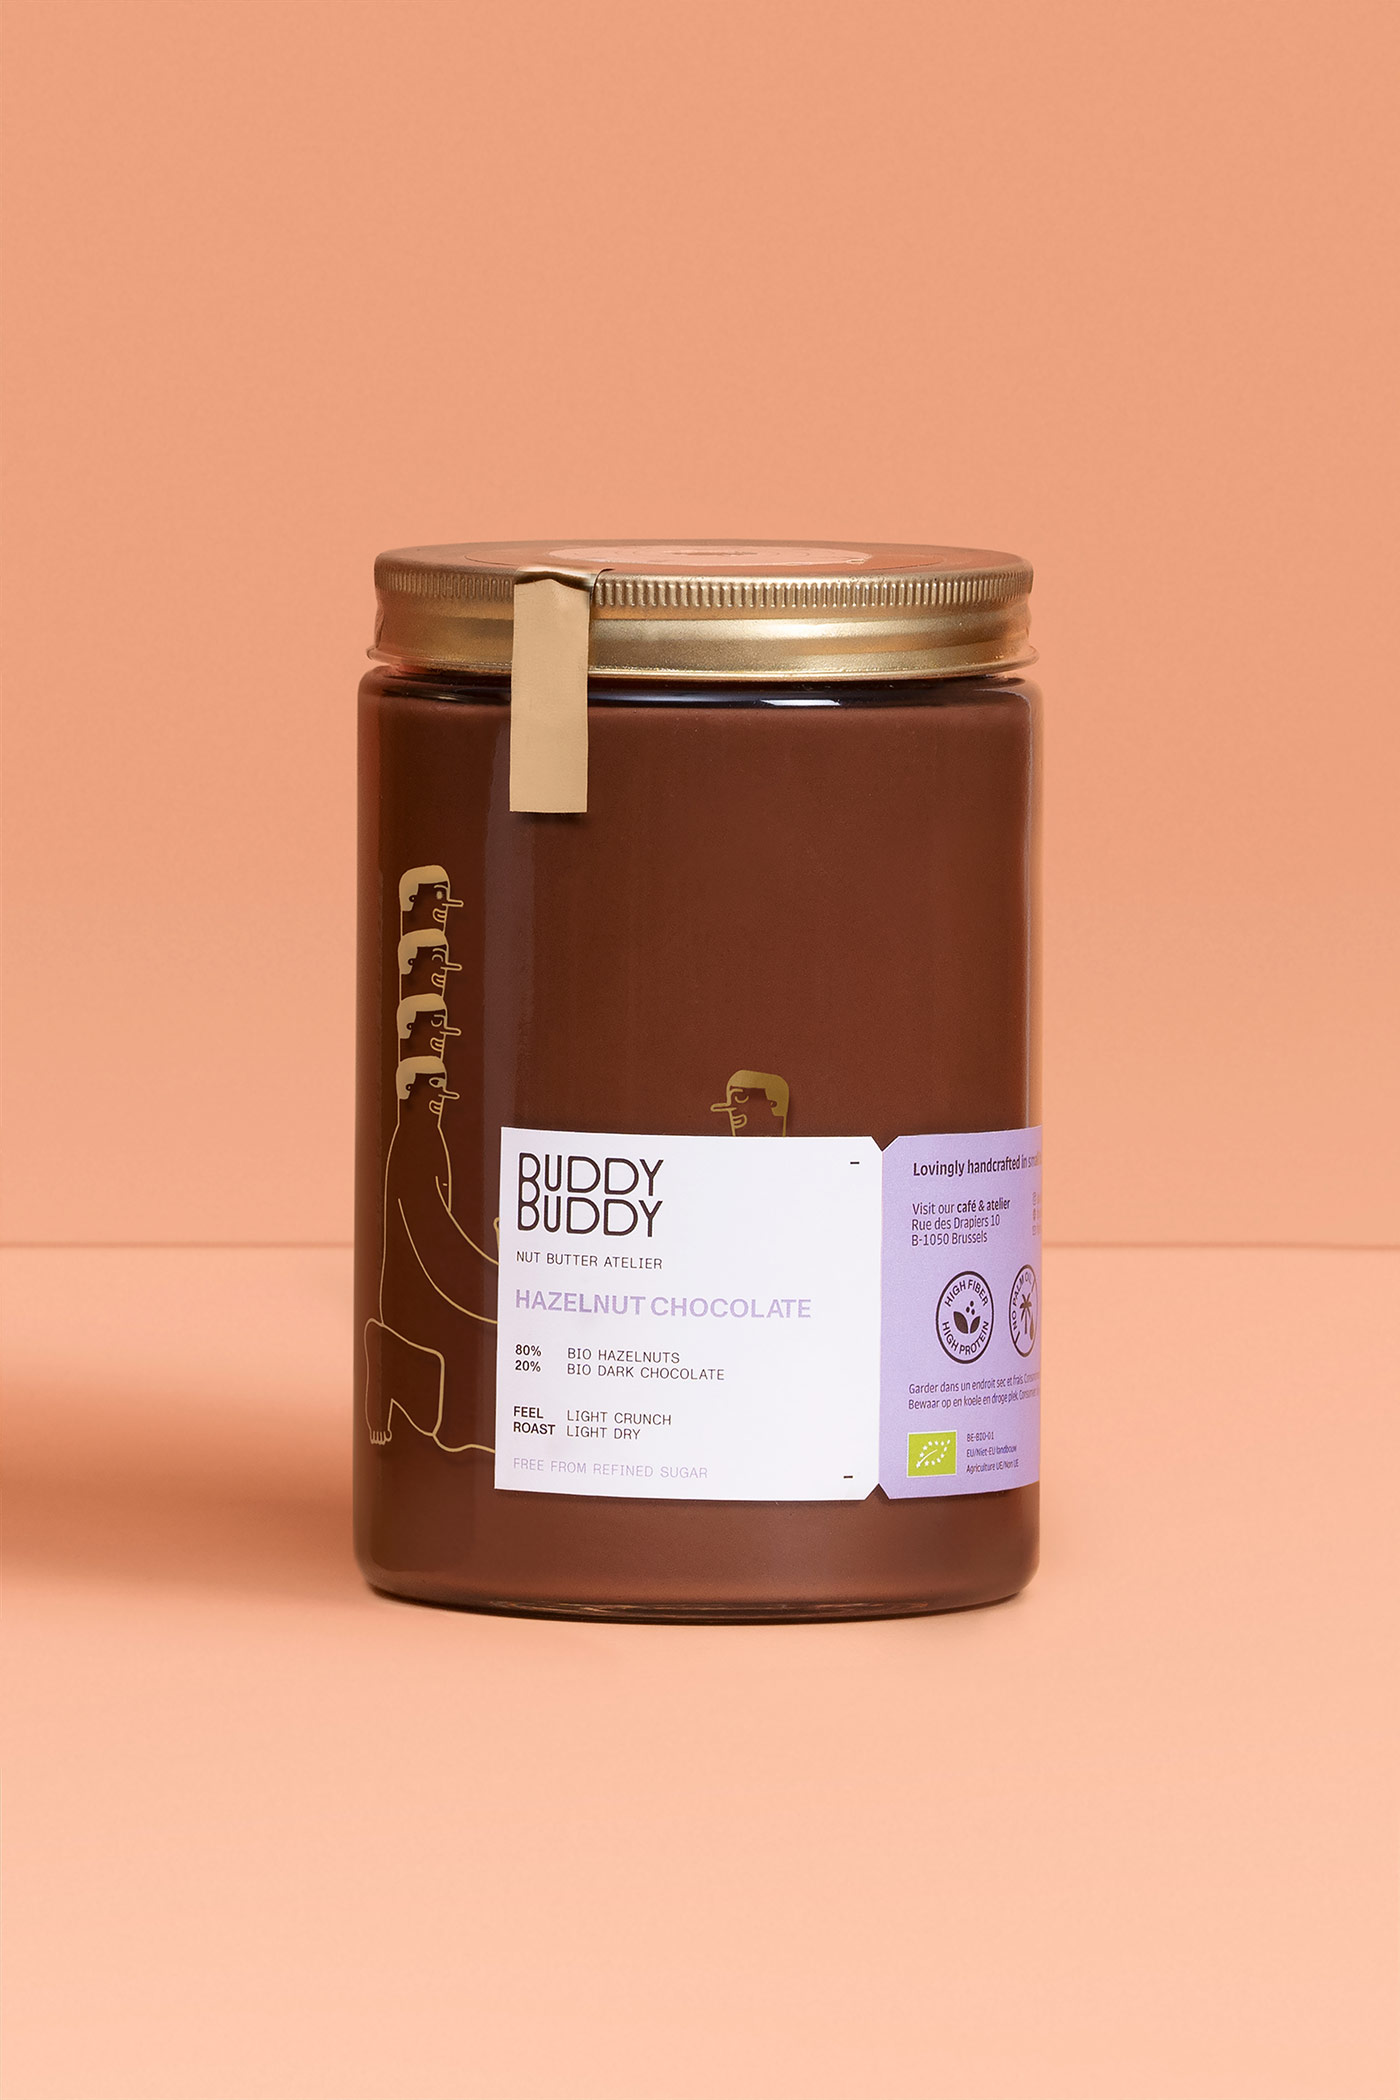 Buddy Buddy nut butter